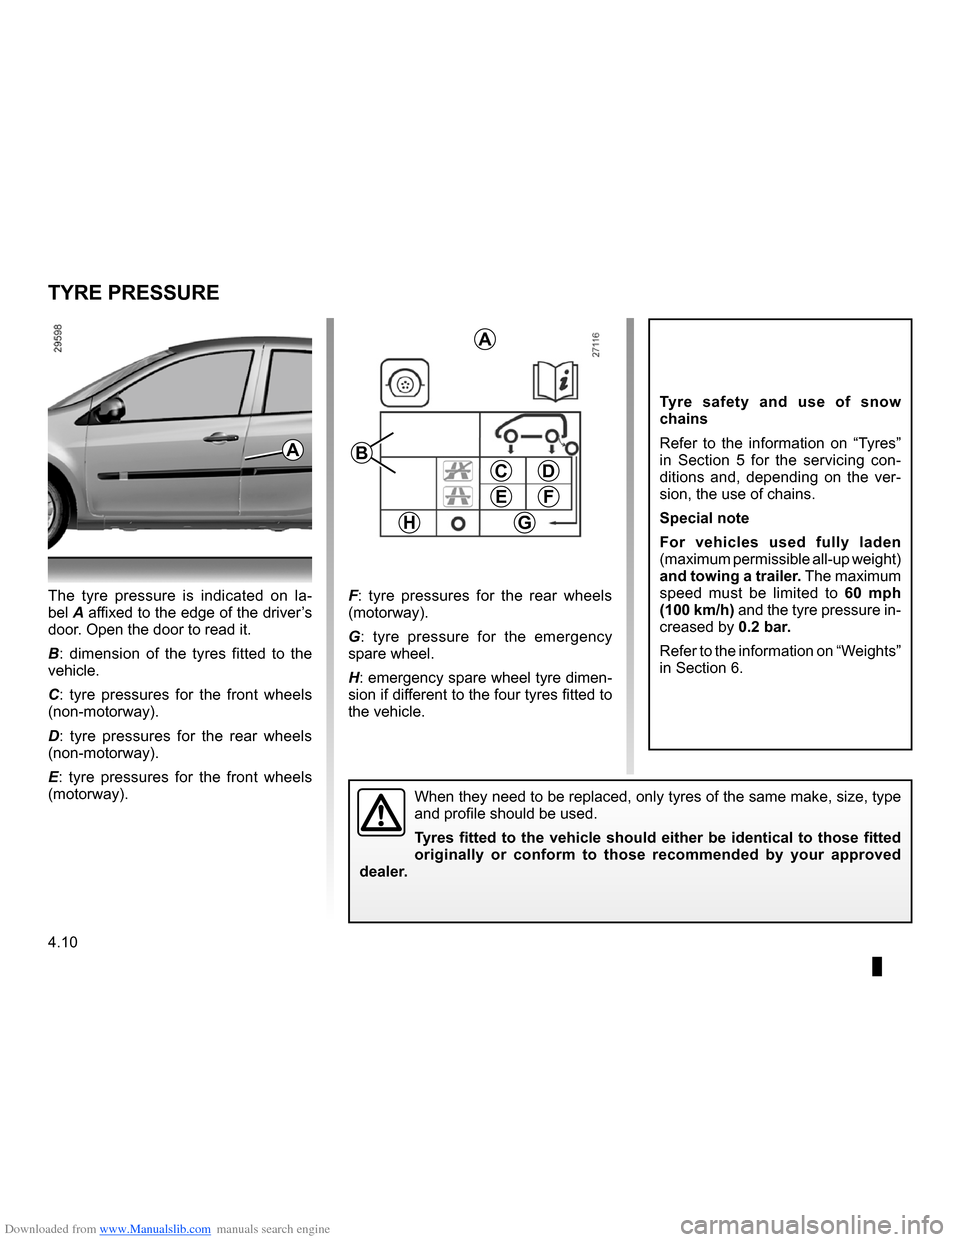 RENAULT CLIO 2009 X85 / 3.G Owners Manual, Page 184